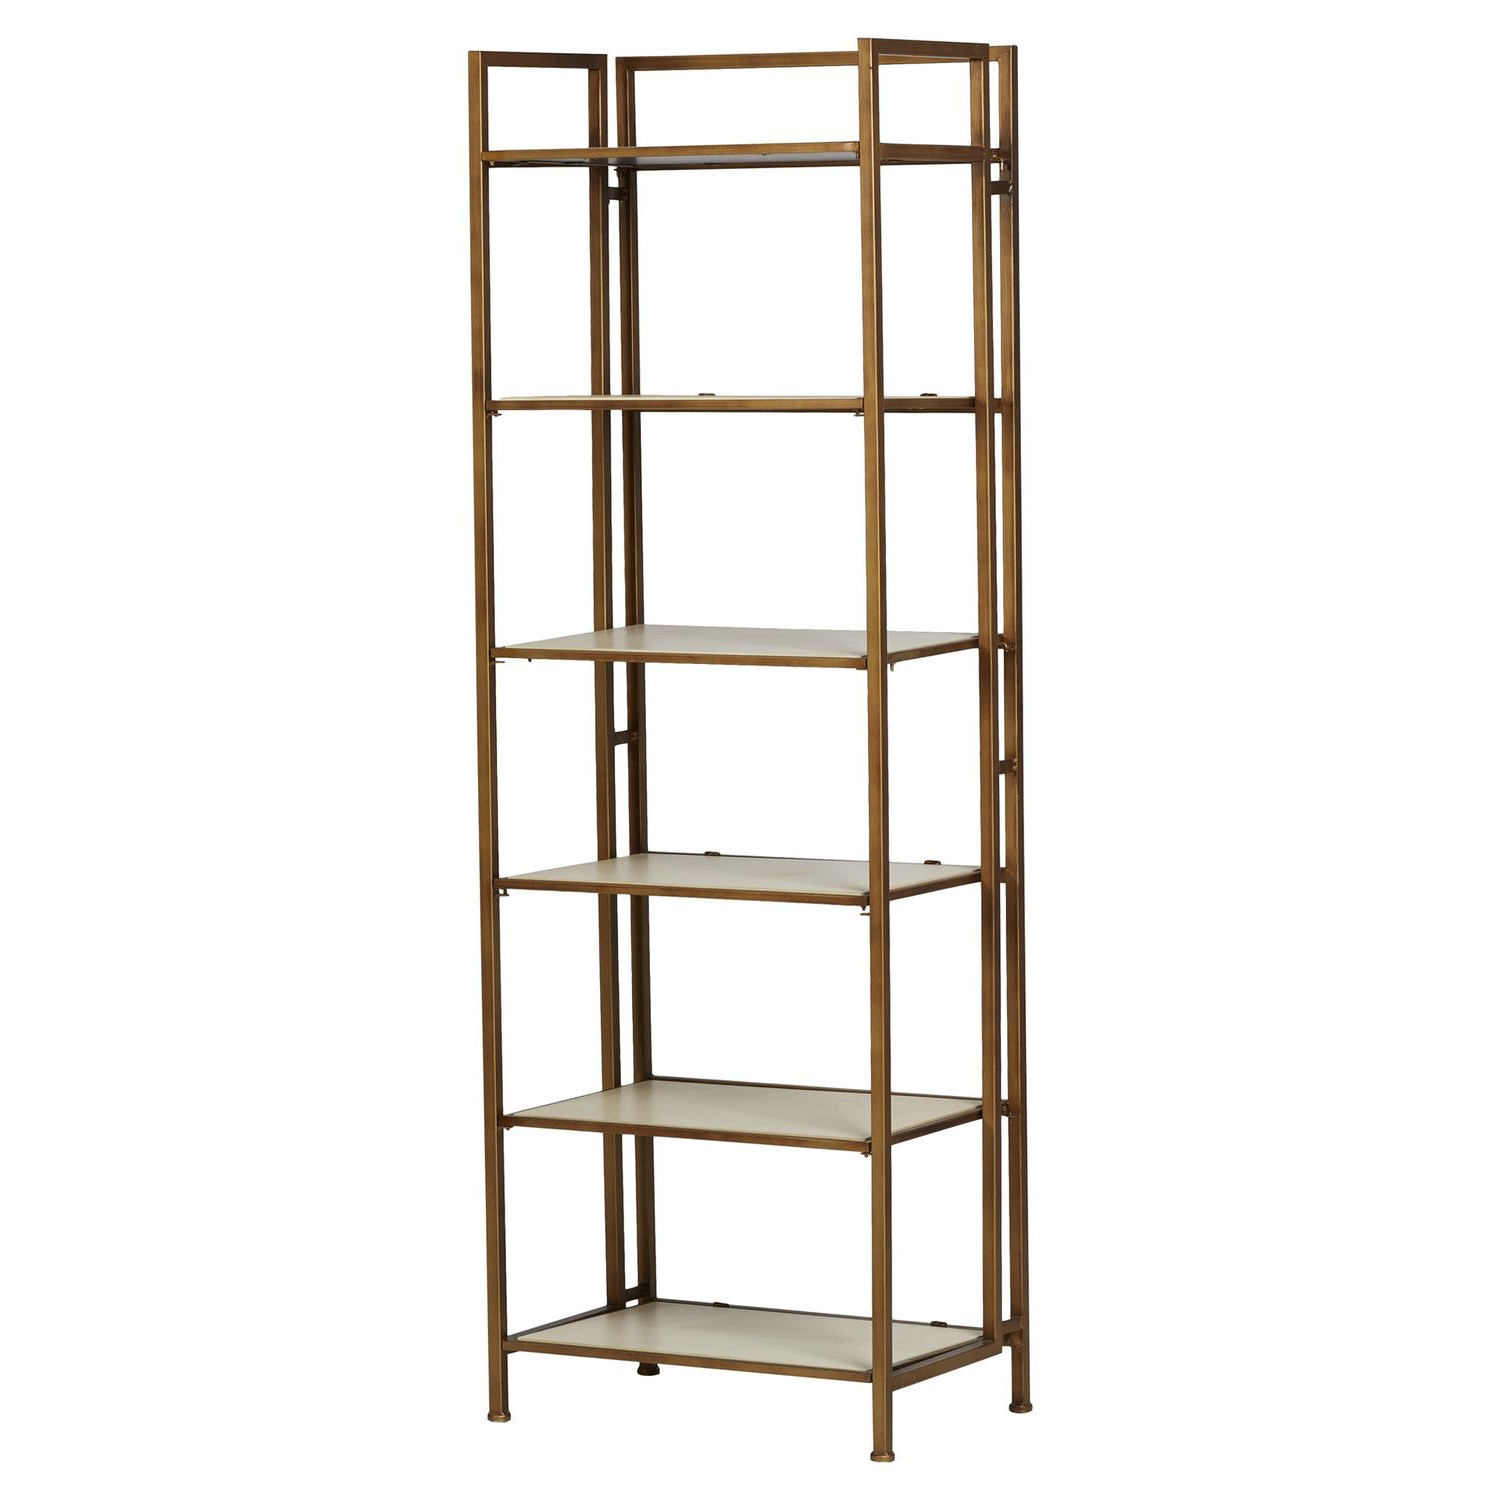 Shop Joss & Main For Your Clarendon Bookcase (View 17 of 20)